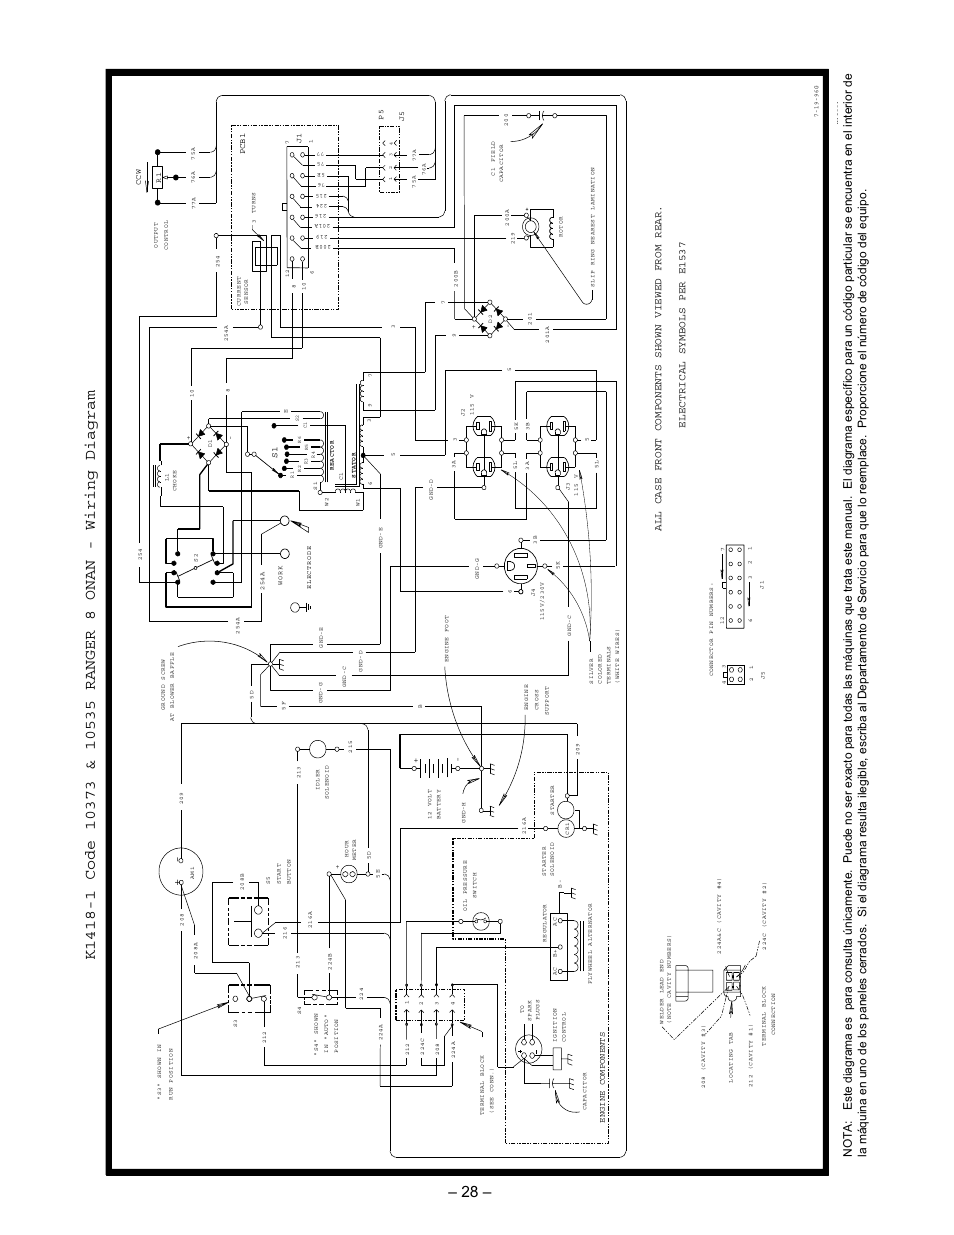 lincoln 225 welder generator wiring diagrams free wiring diagram images